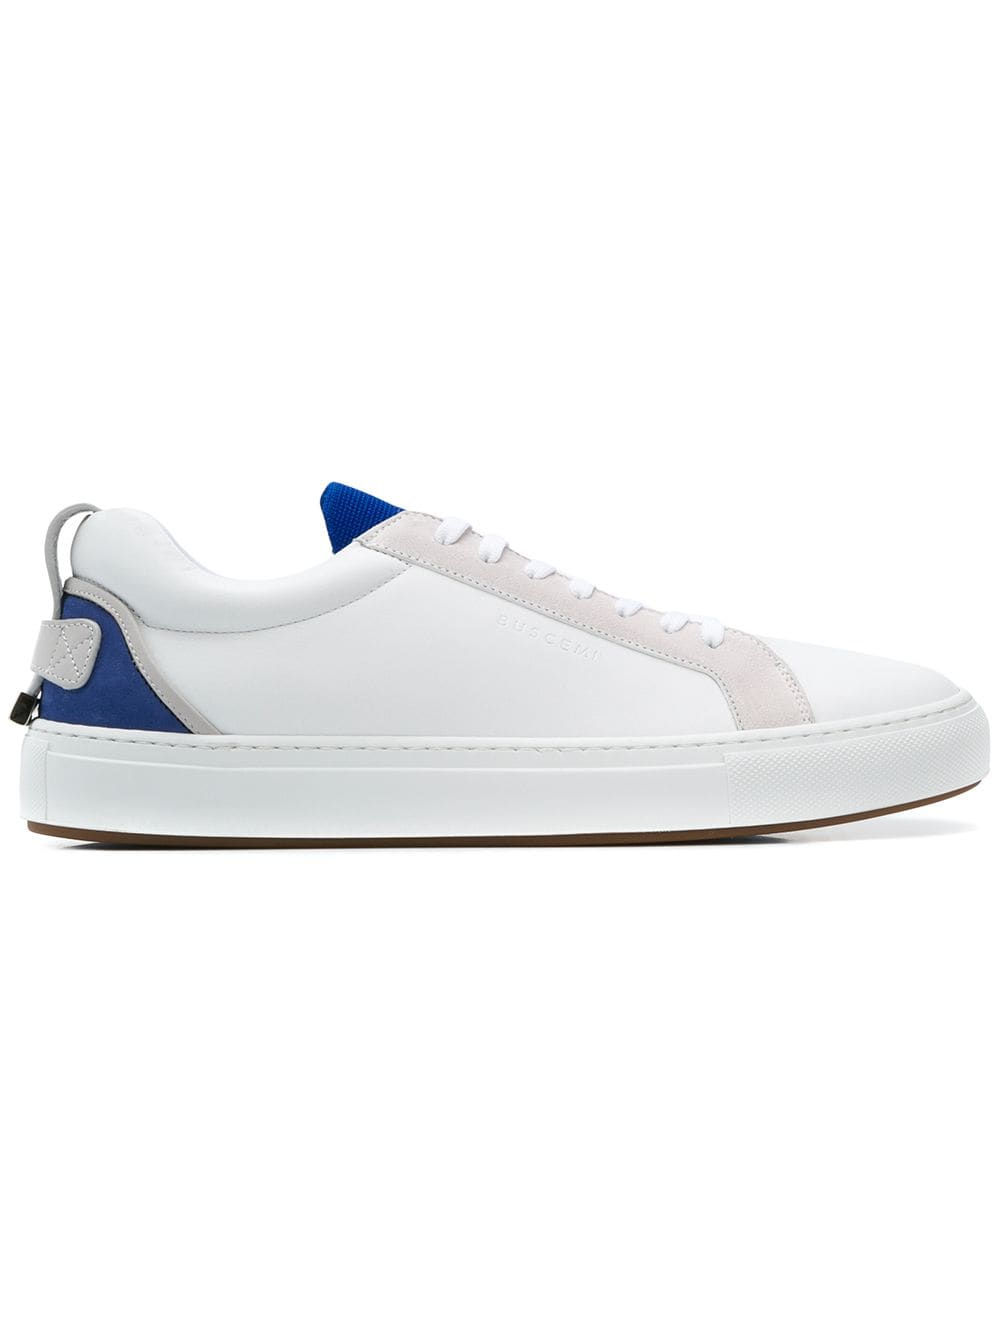 Buscemi Lowtop sneakers - Wit